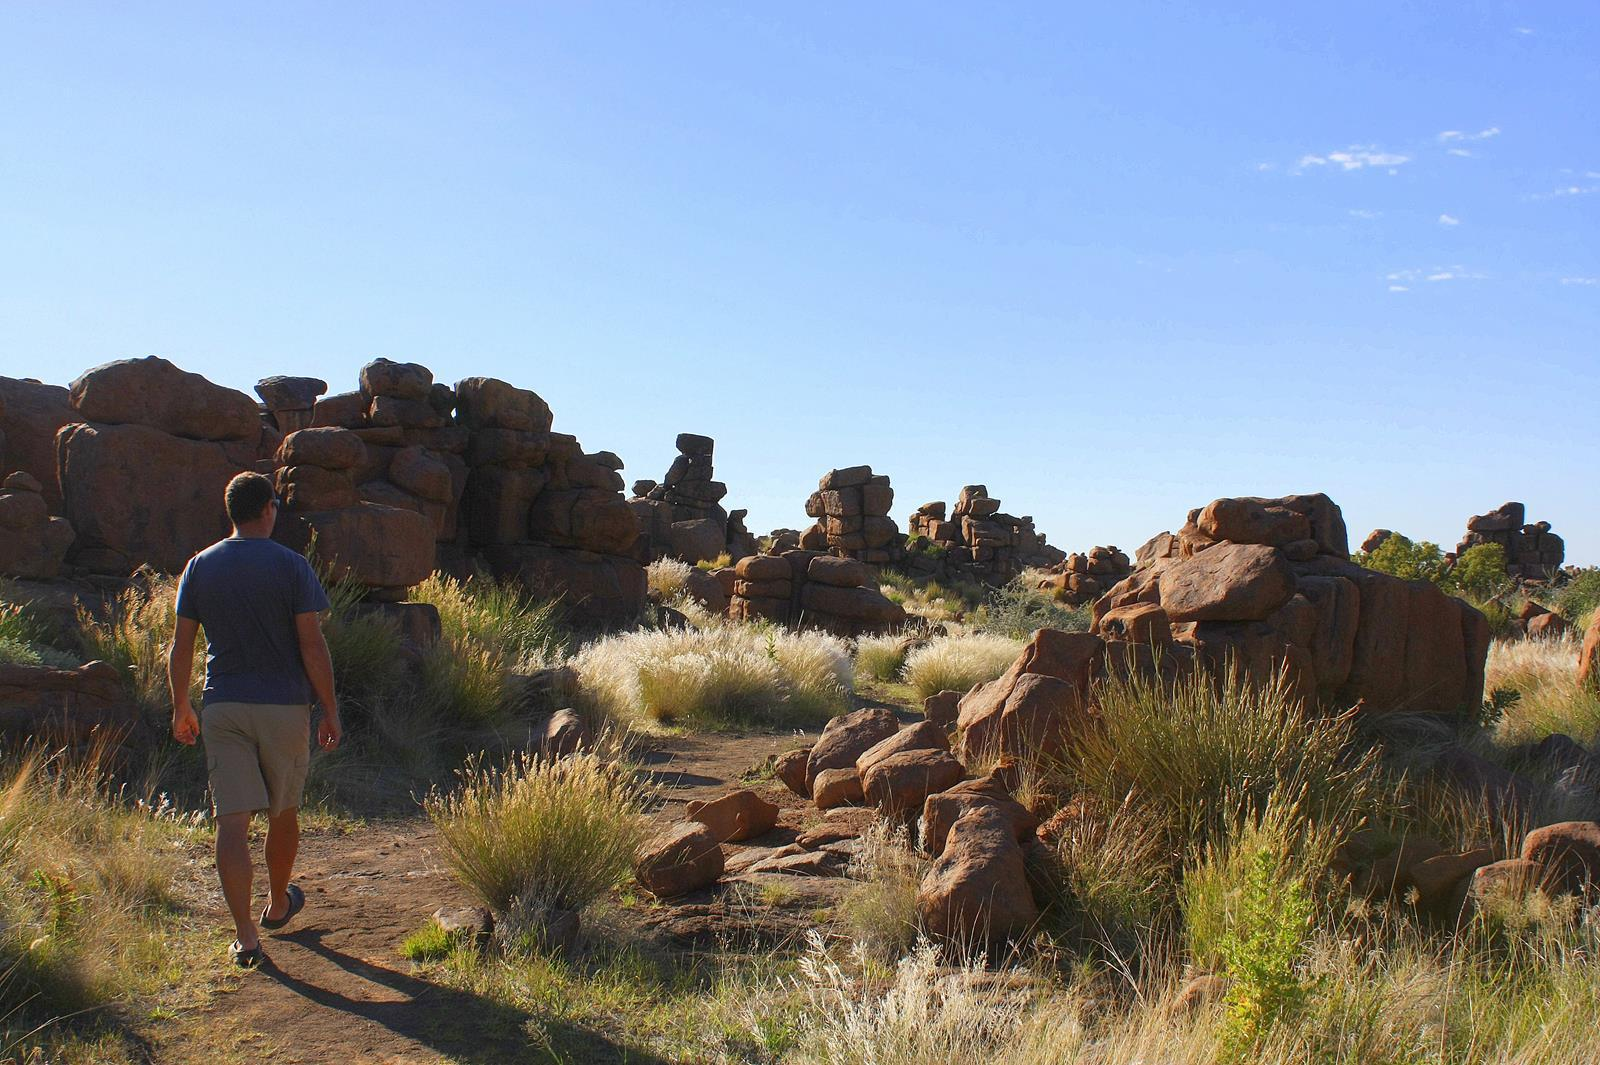 The boulders at Giant's Playground.